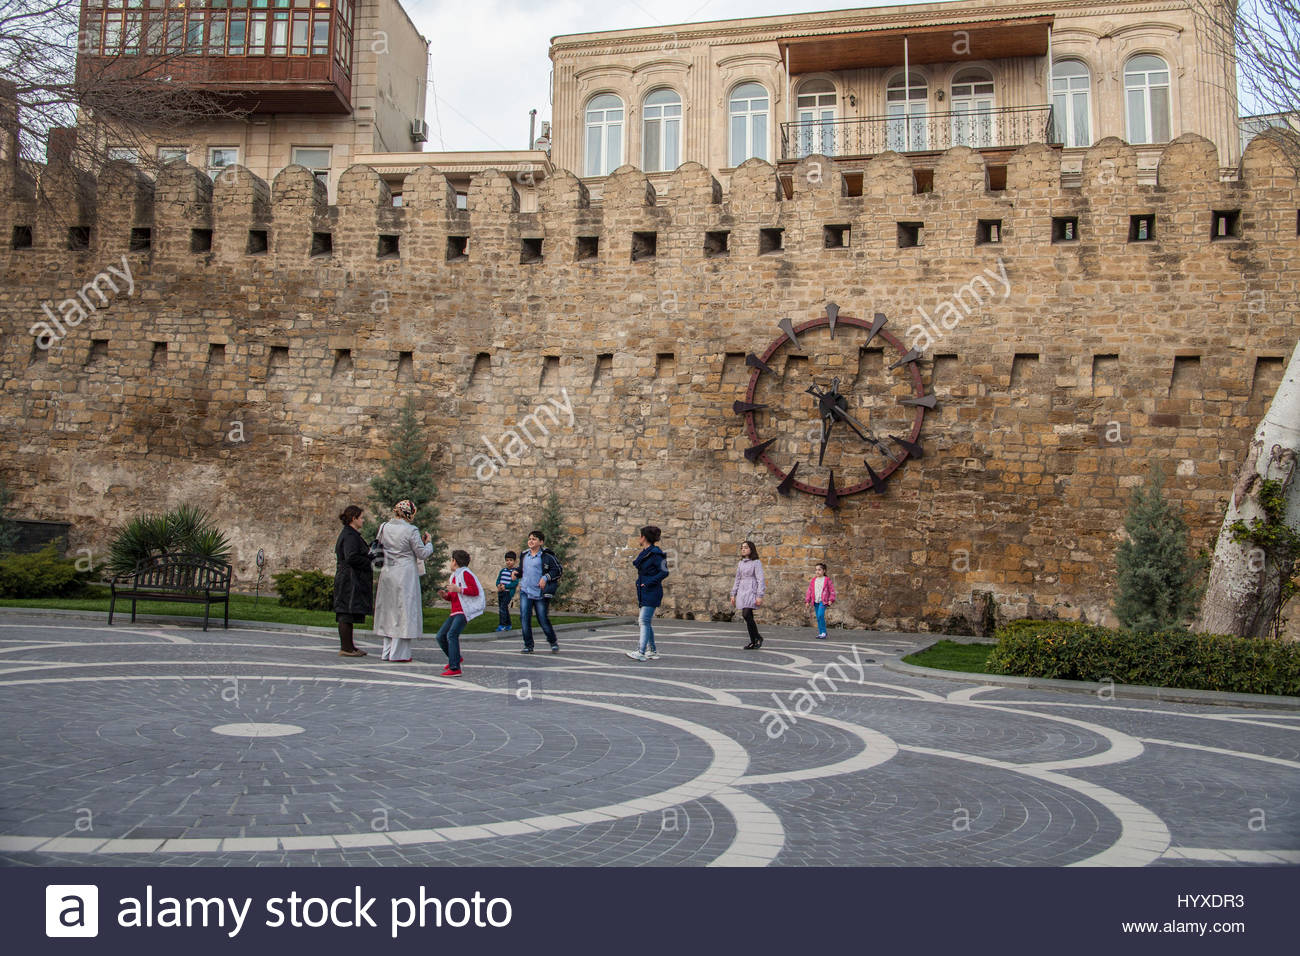 Pedestrians walk under the clock in Philharmony Park. - Stock Image